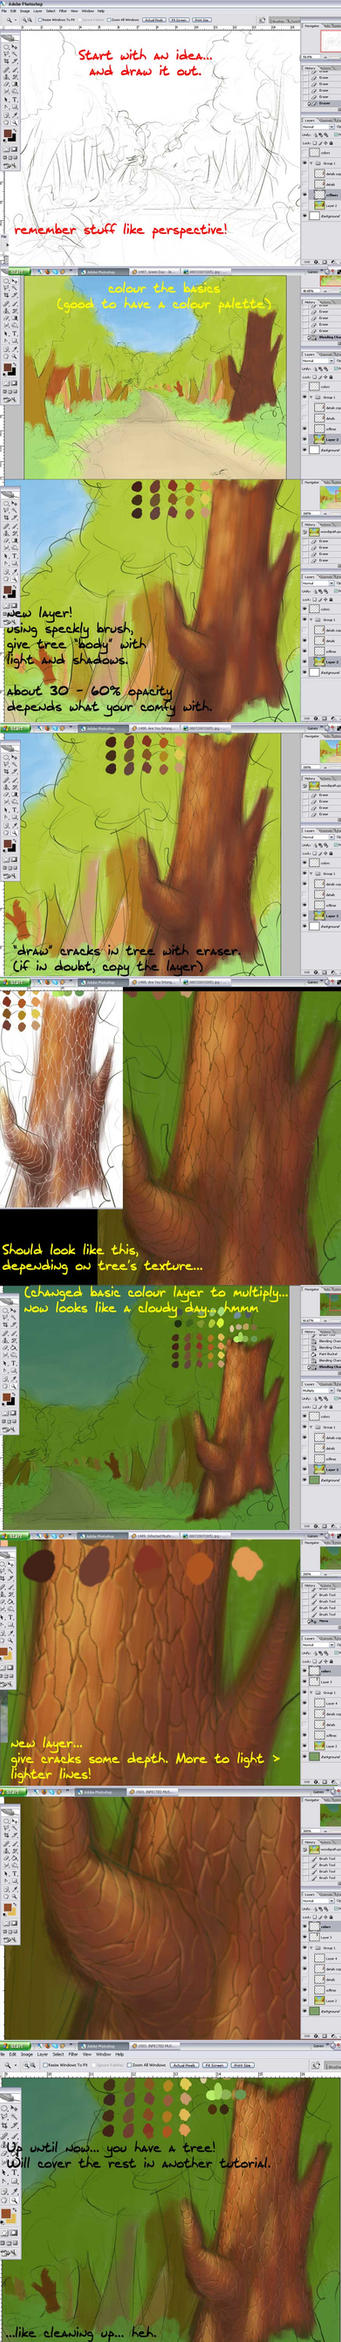 Woods path BG Tutorial -tree by FlyingGekko774